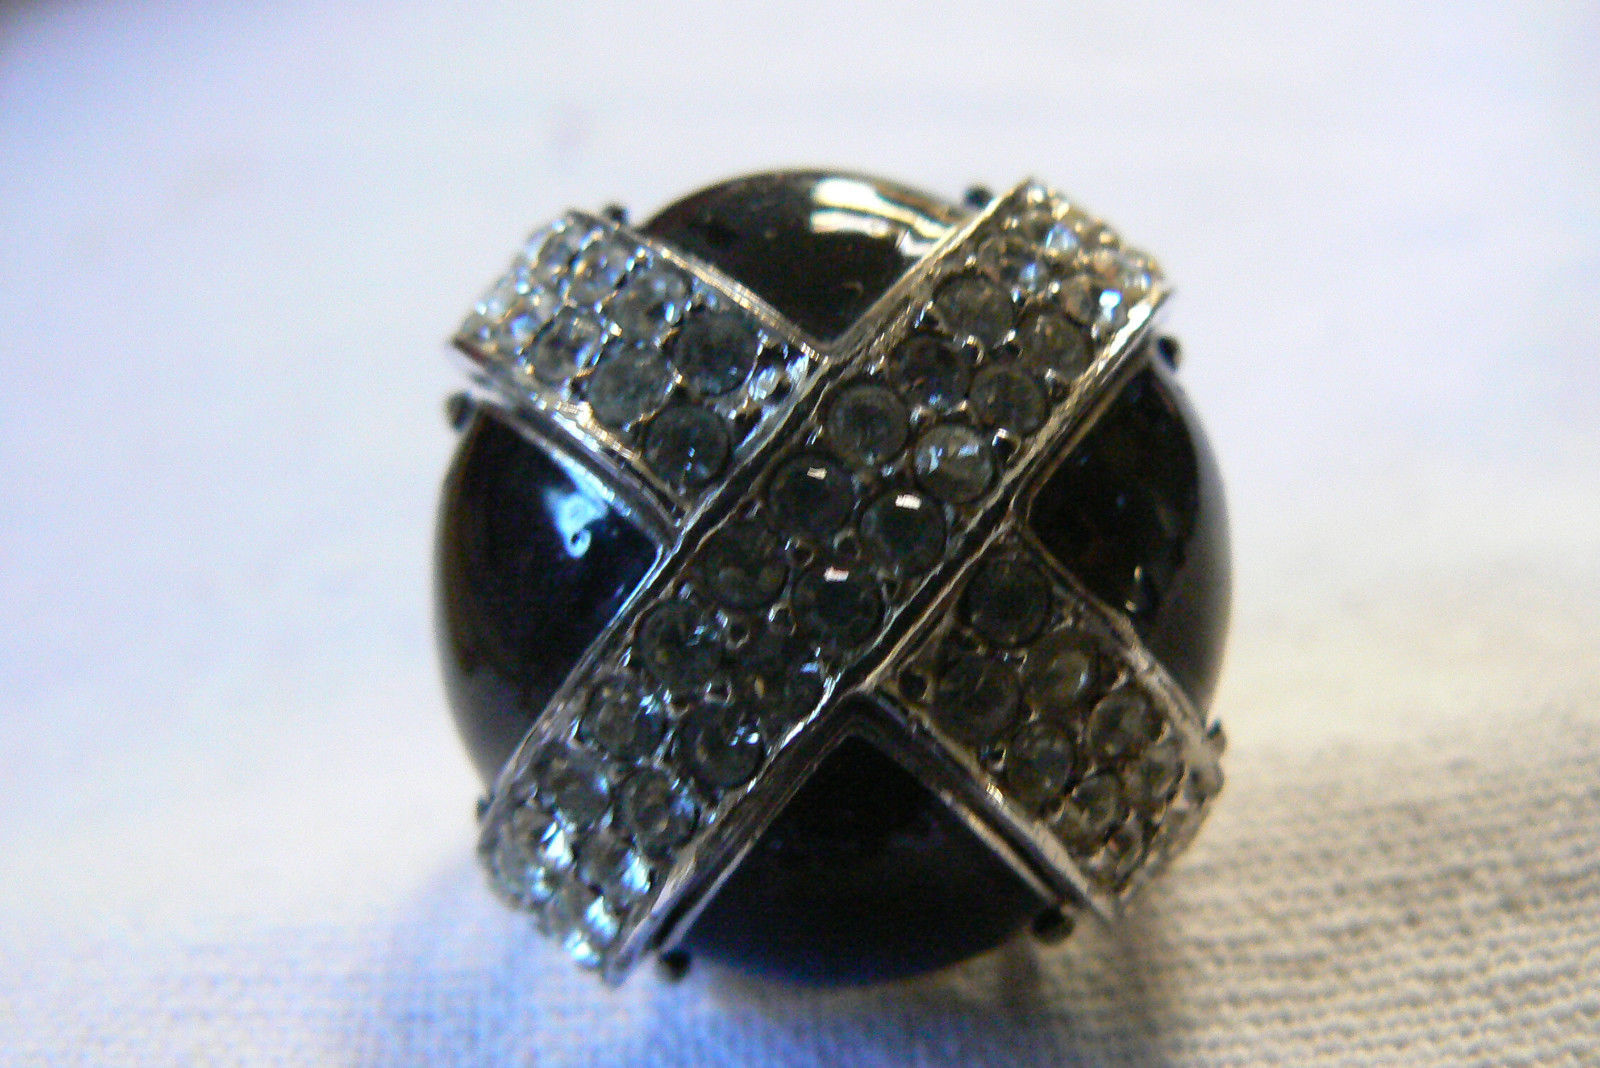 Silver Tone Black Clear Crystal Cross Mushrom Dome Large Fashion Ring sz 8.5 - $35.00